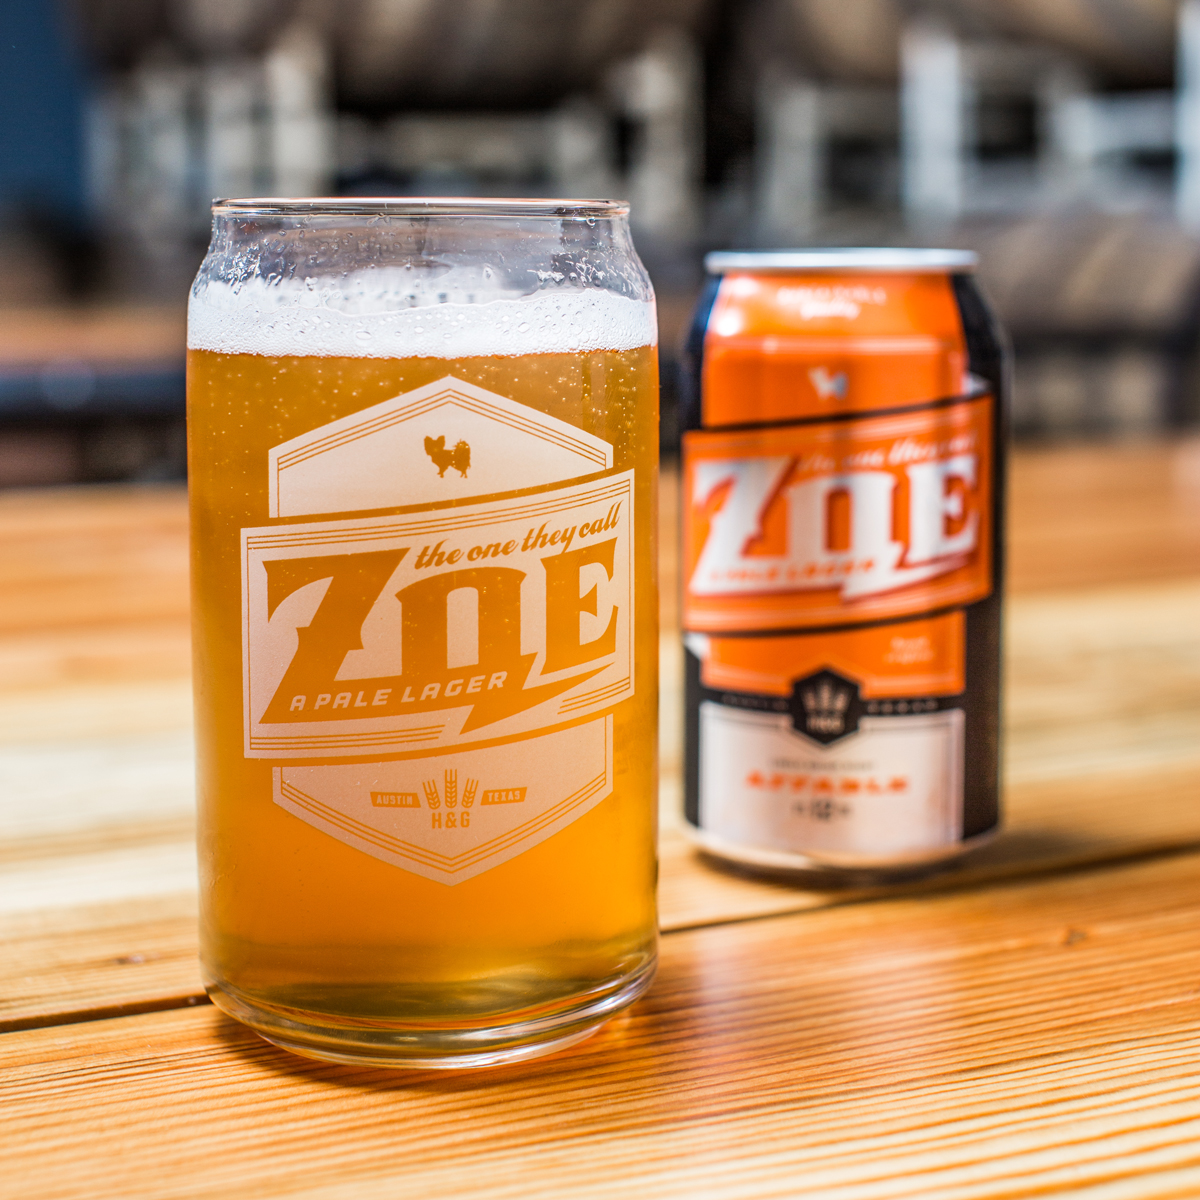 Texas: Hops & Grain The One They Call Zoe